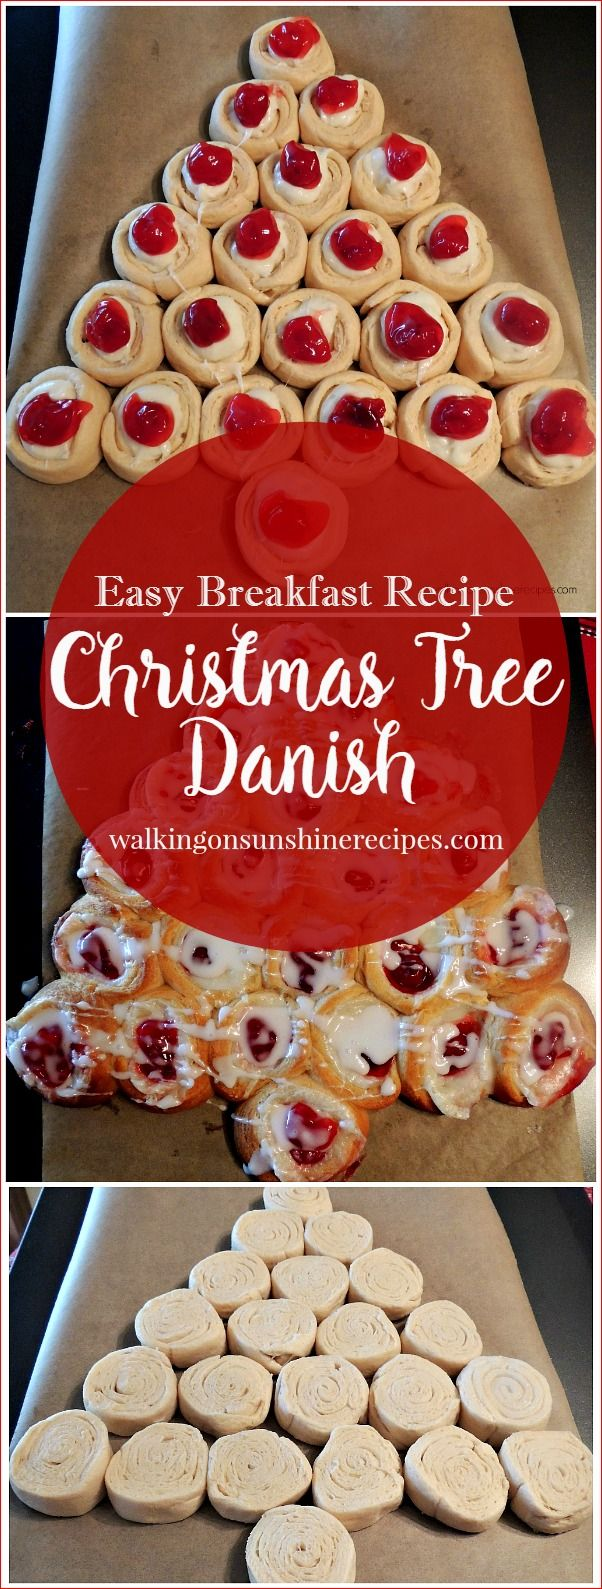 Christmas Tree Cream Cheese Danish - Easy Last Minute Breakfast Recipe from Walking on Sunshine Recipes